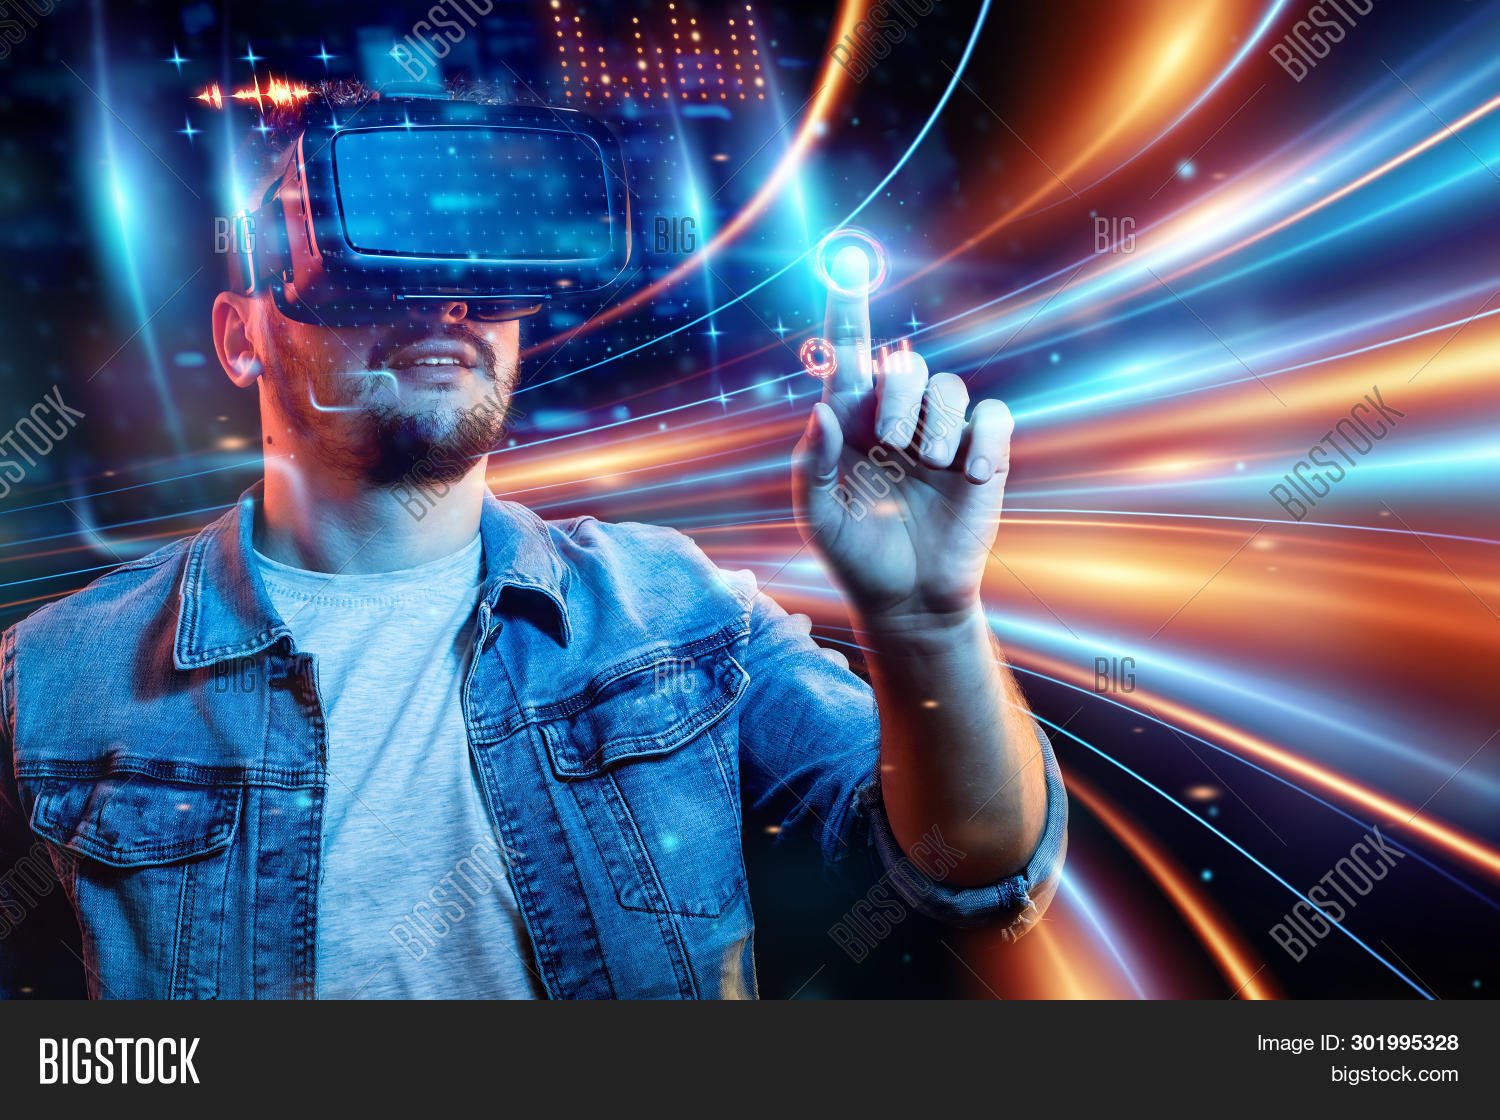 360,3d,activity,background,beard,casual,concept,cyber,design,device,digital,display,enjoying,entertainment,equipment,excited,experience,fun,future,futuristic,gadget,game,gaming,glasses,goggles,headset,hi-tech,innovation,looking,male,man,modern,people,person,play,reality,science,shirt,simulation,tech,technology,video,virtual,vision,visual,vr,wearable,white,young